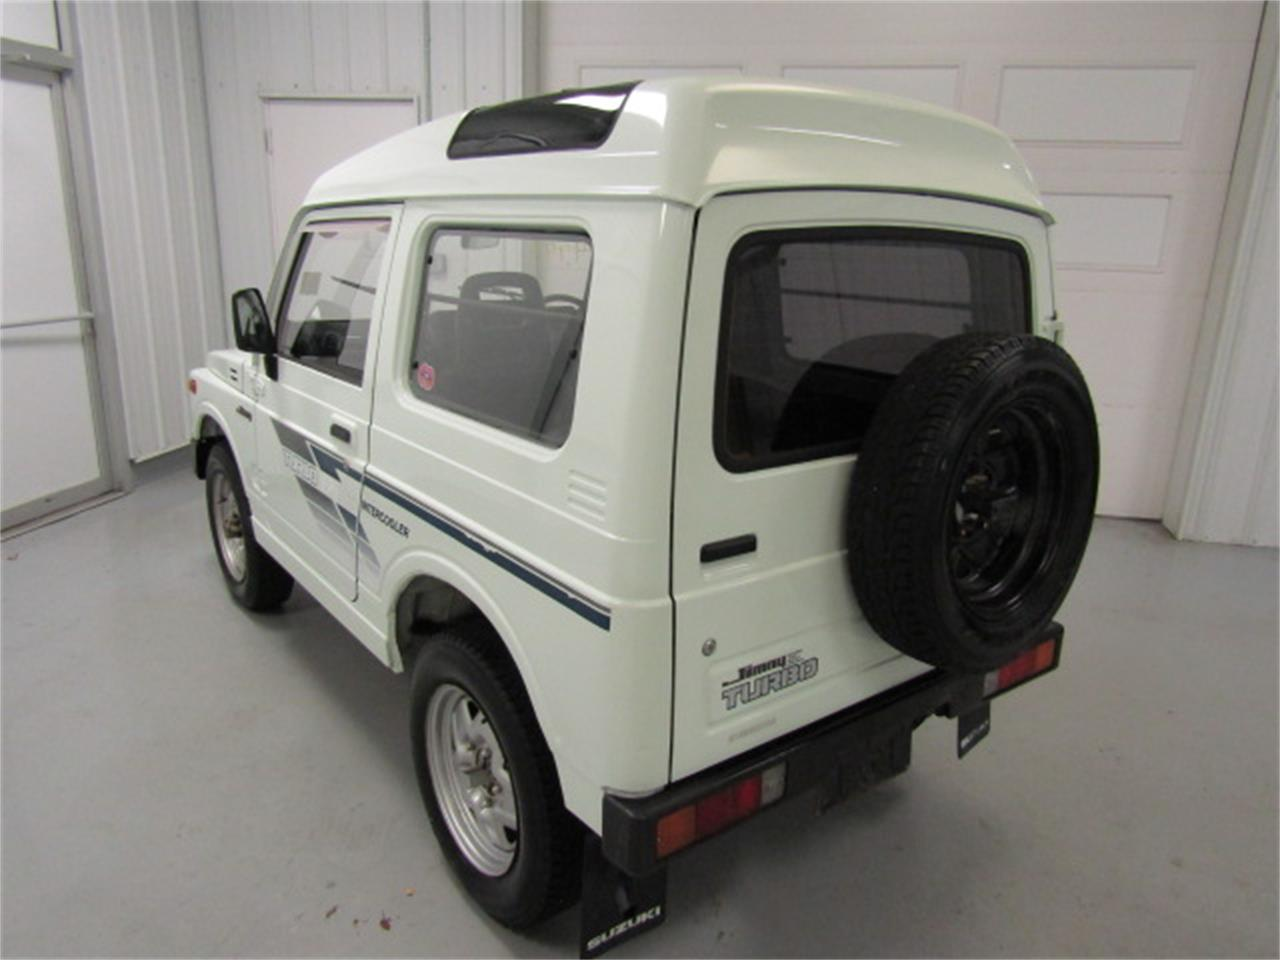 Large Picture of 1987 Suzuki Jimmy located in Christiansburg Virginia - $3,999.00 - JM3N